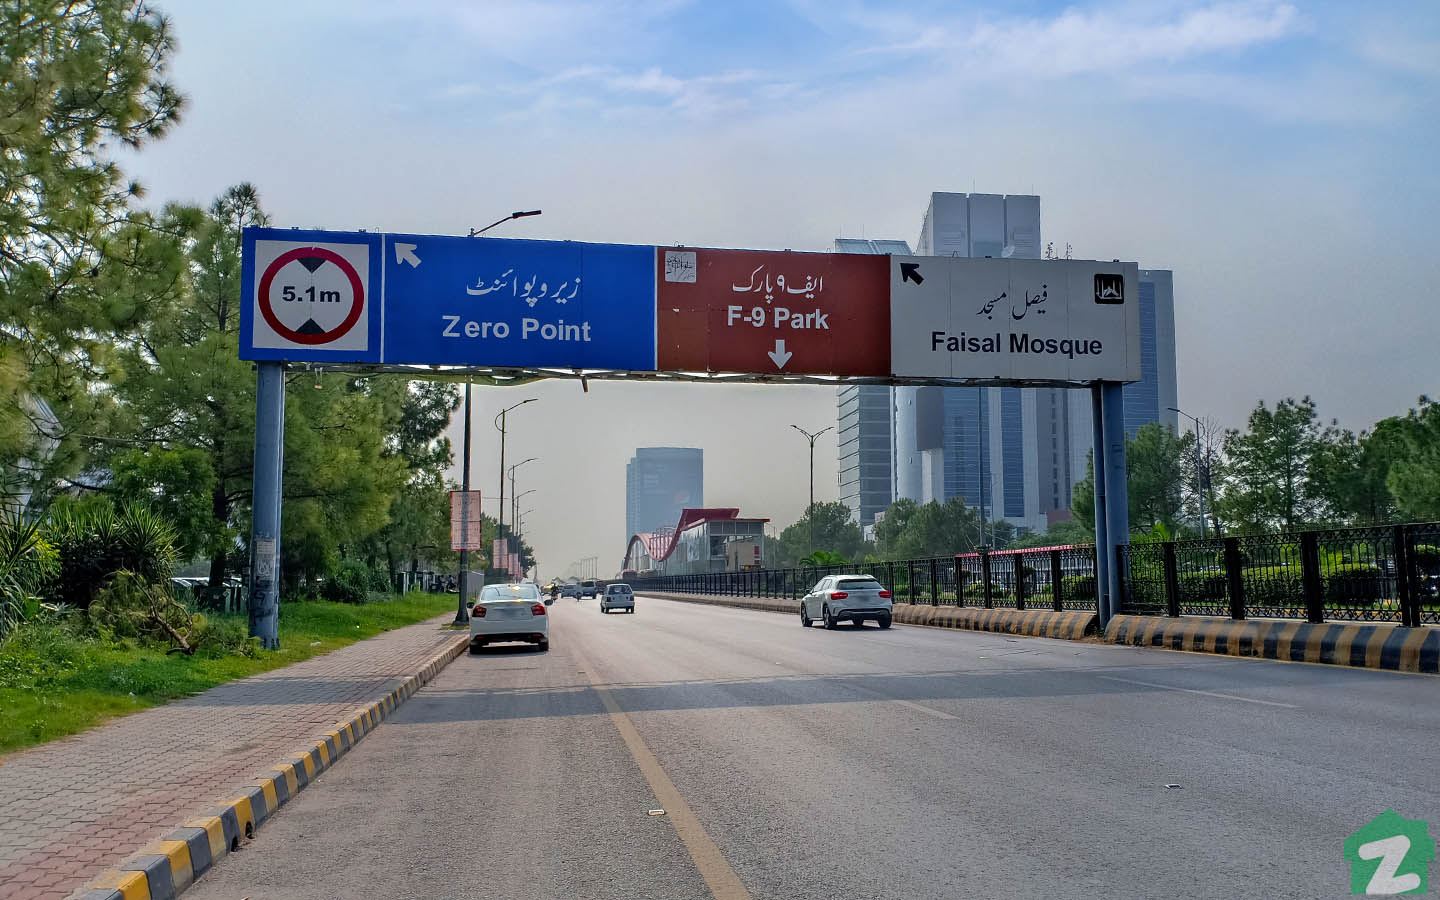 Jinnah Avenue is one of the most prominent roads in Islamabad